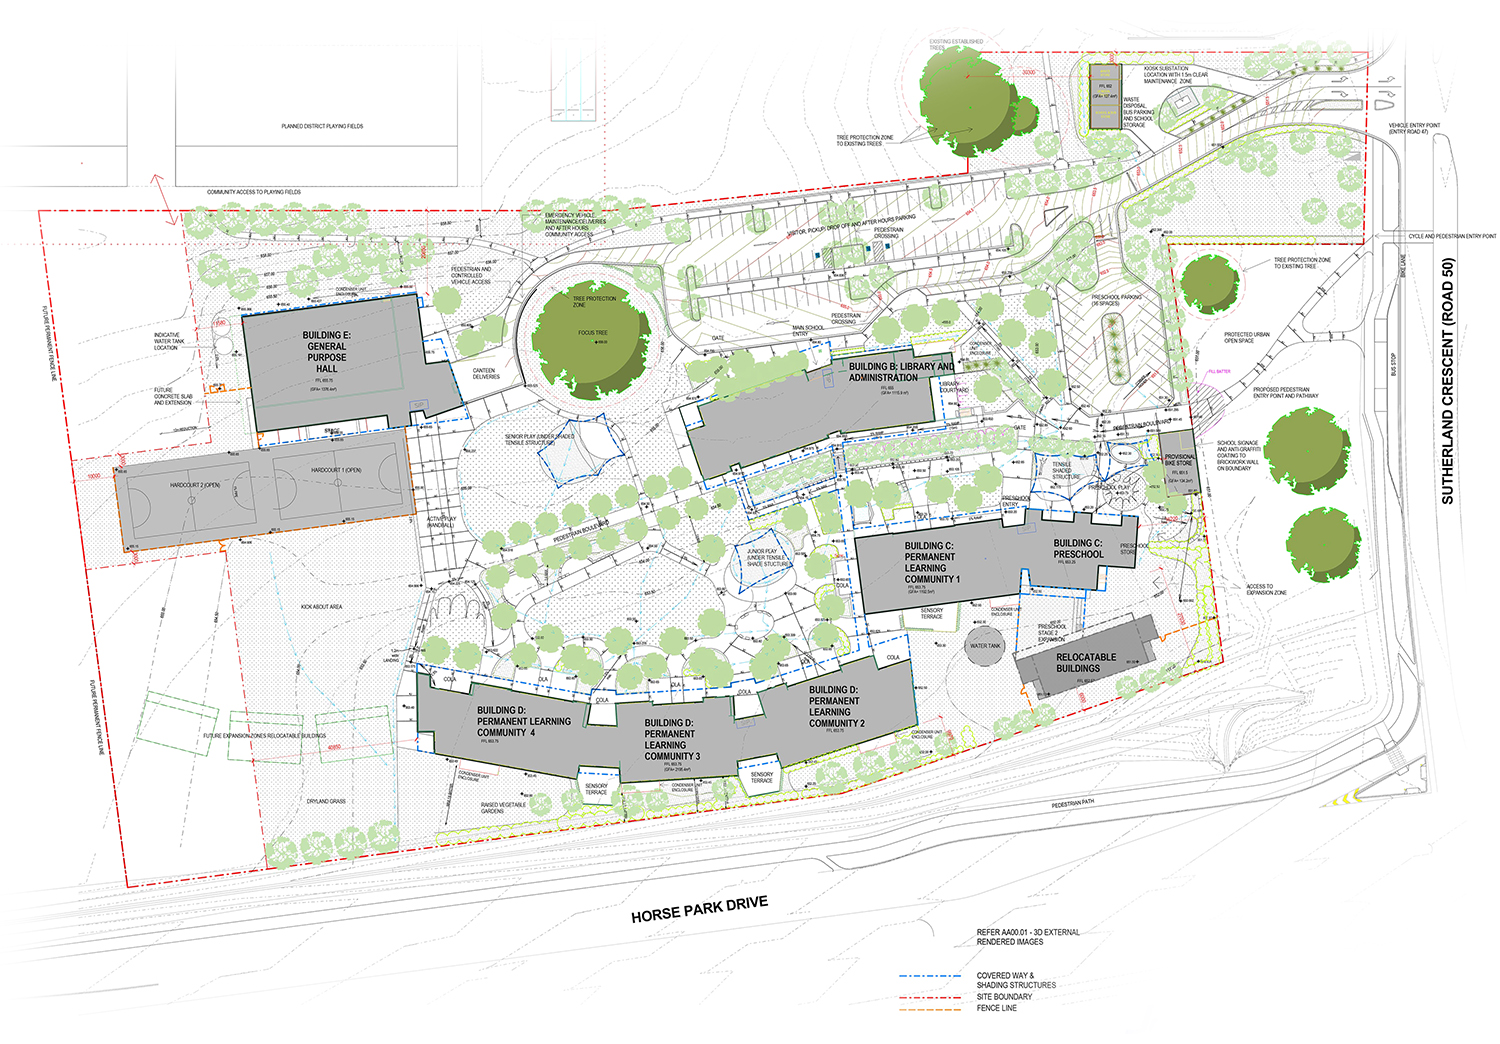 The masterplan for the new school